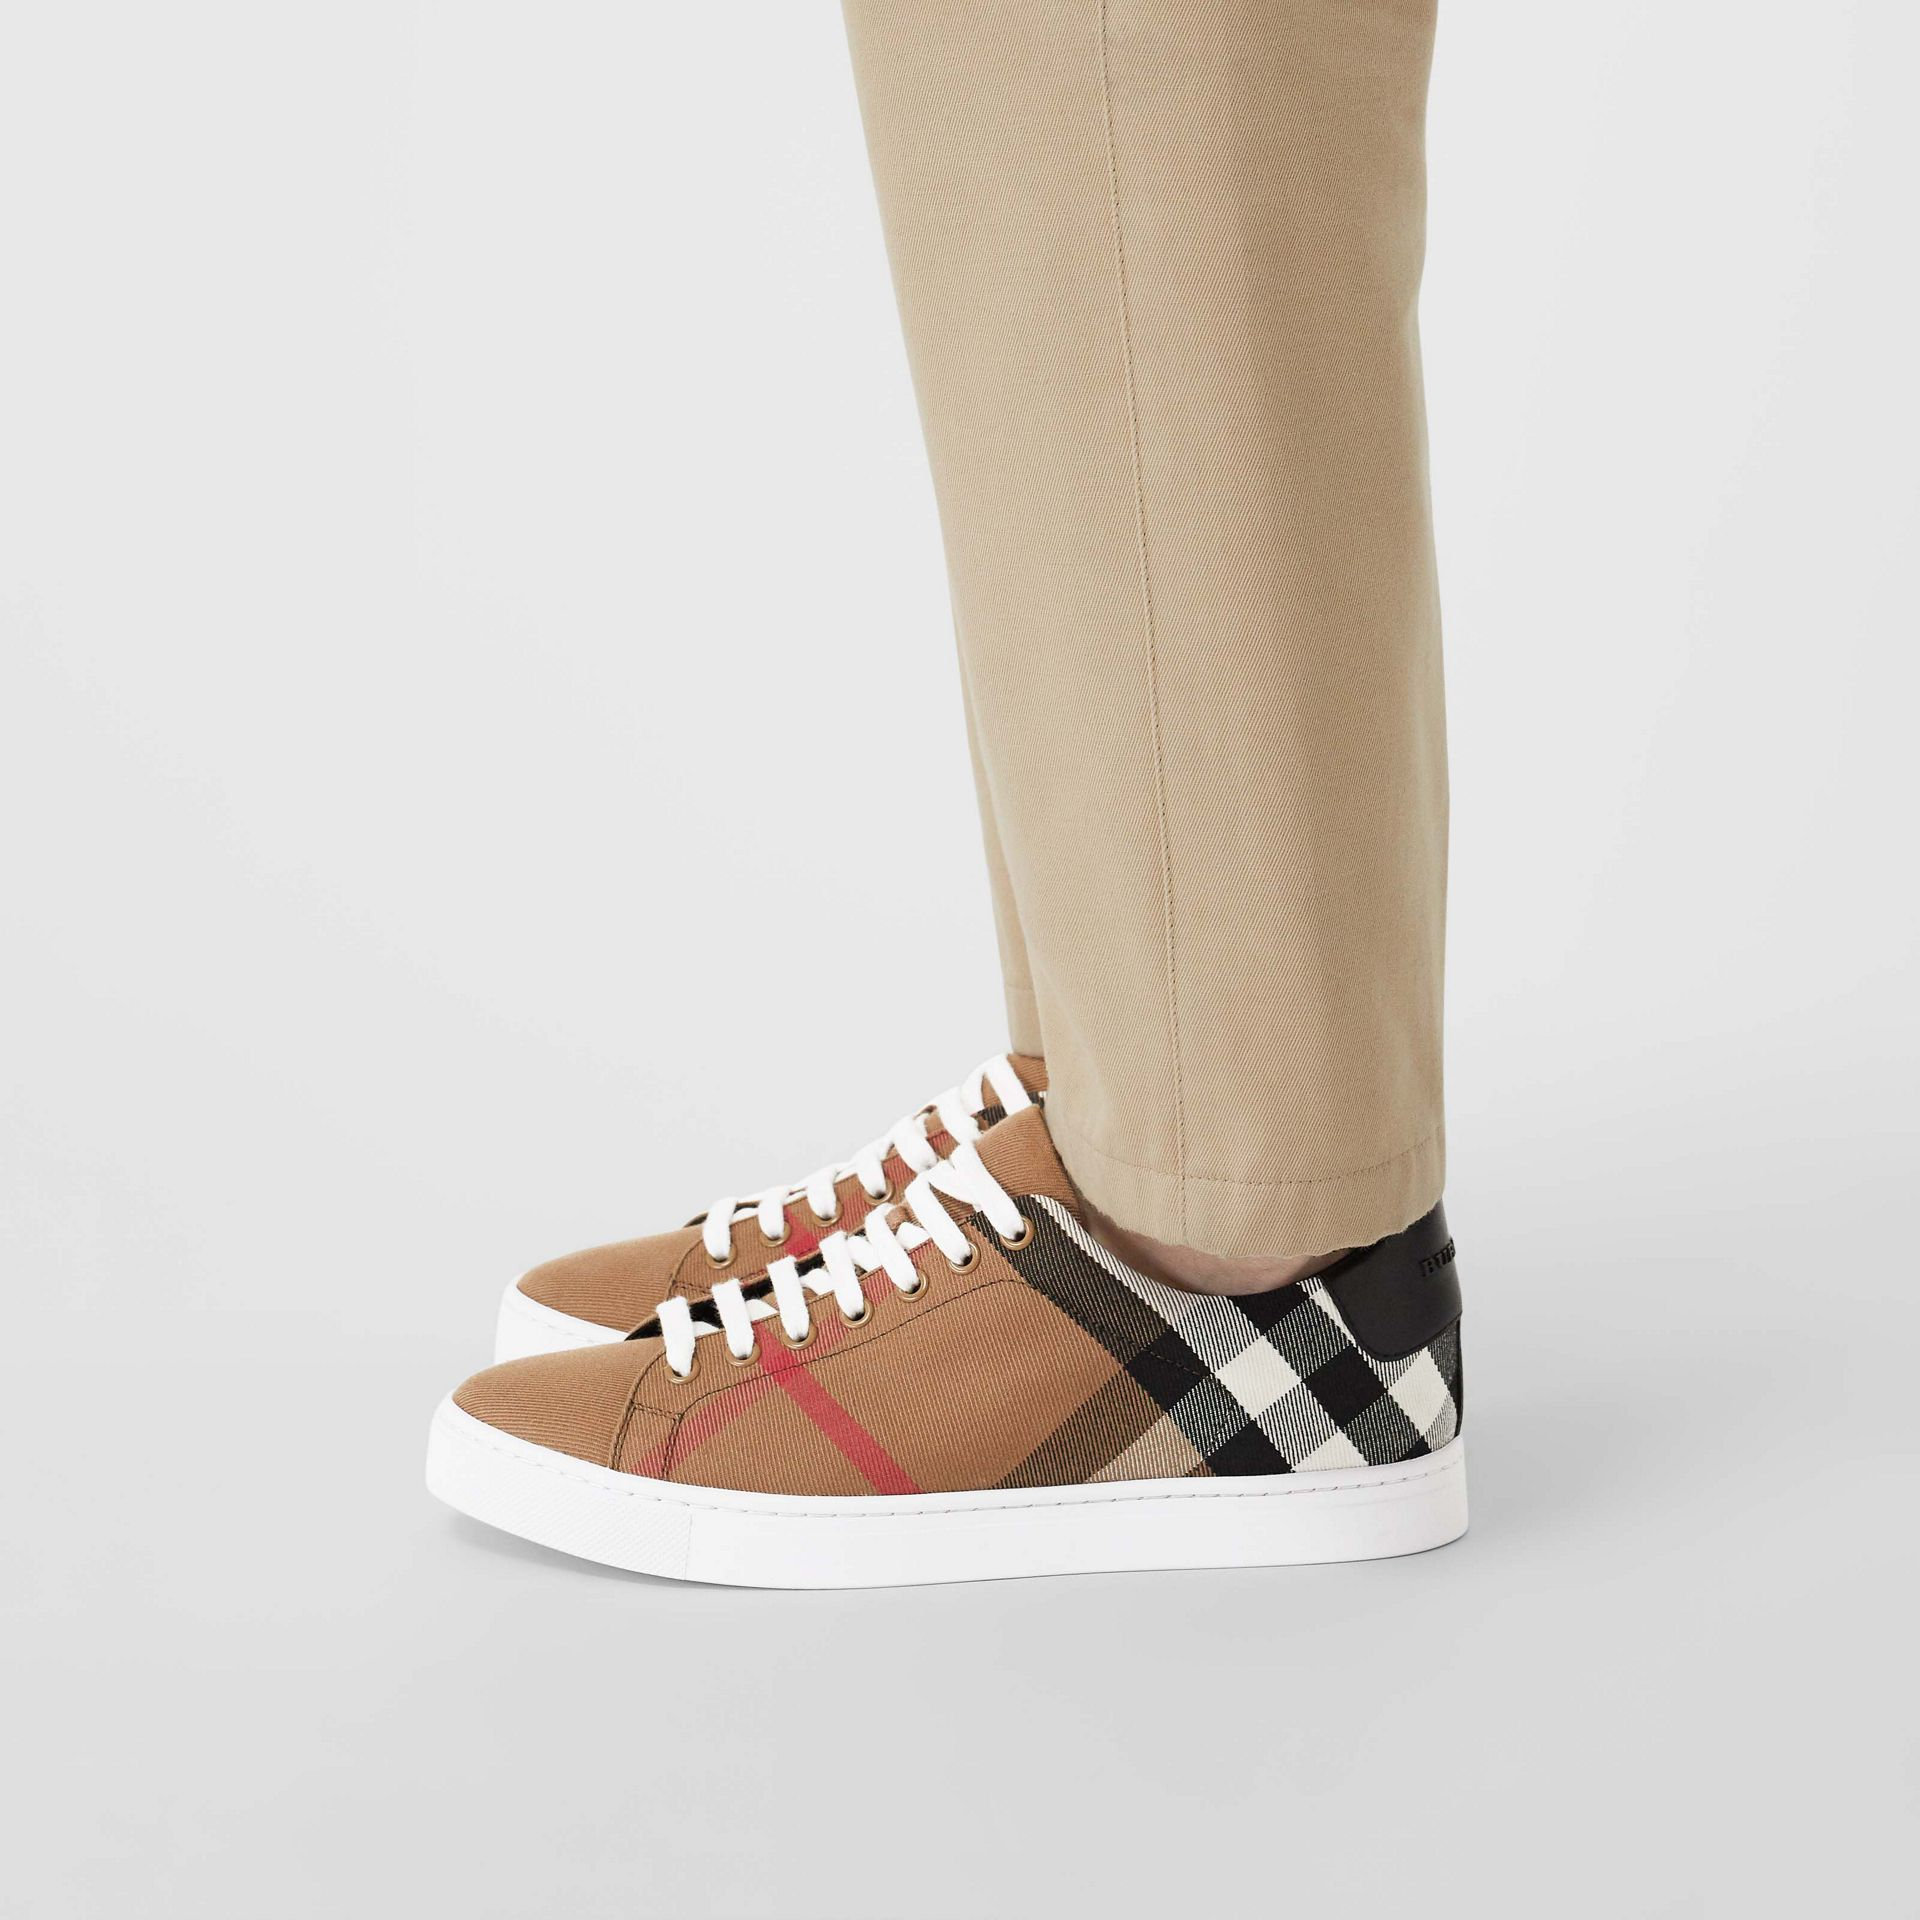 Sneakers en coton House check et cuir (Check/noir) - Homme | Burberry - photo de la galerie 2